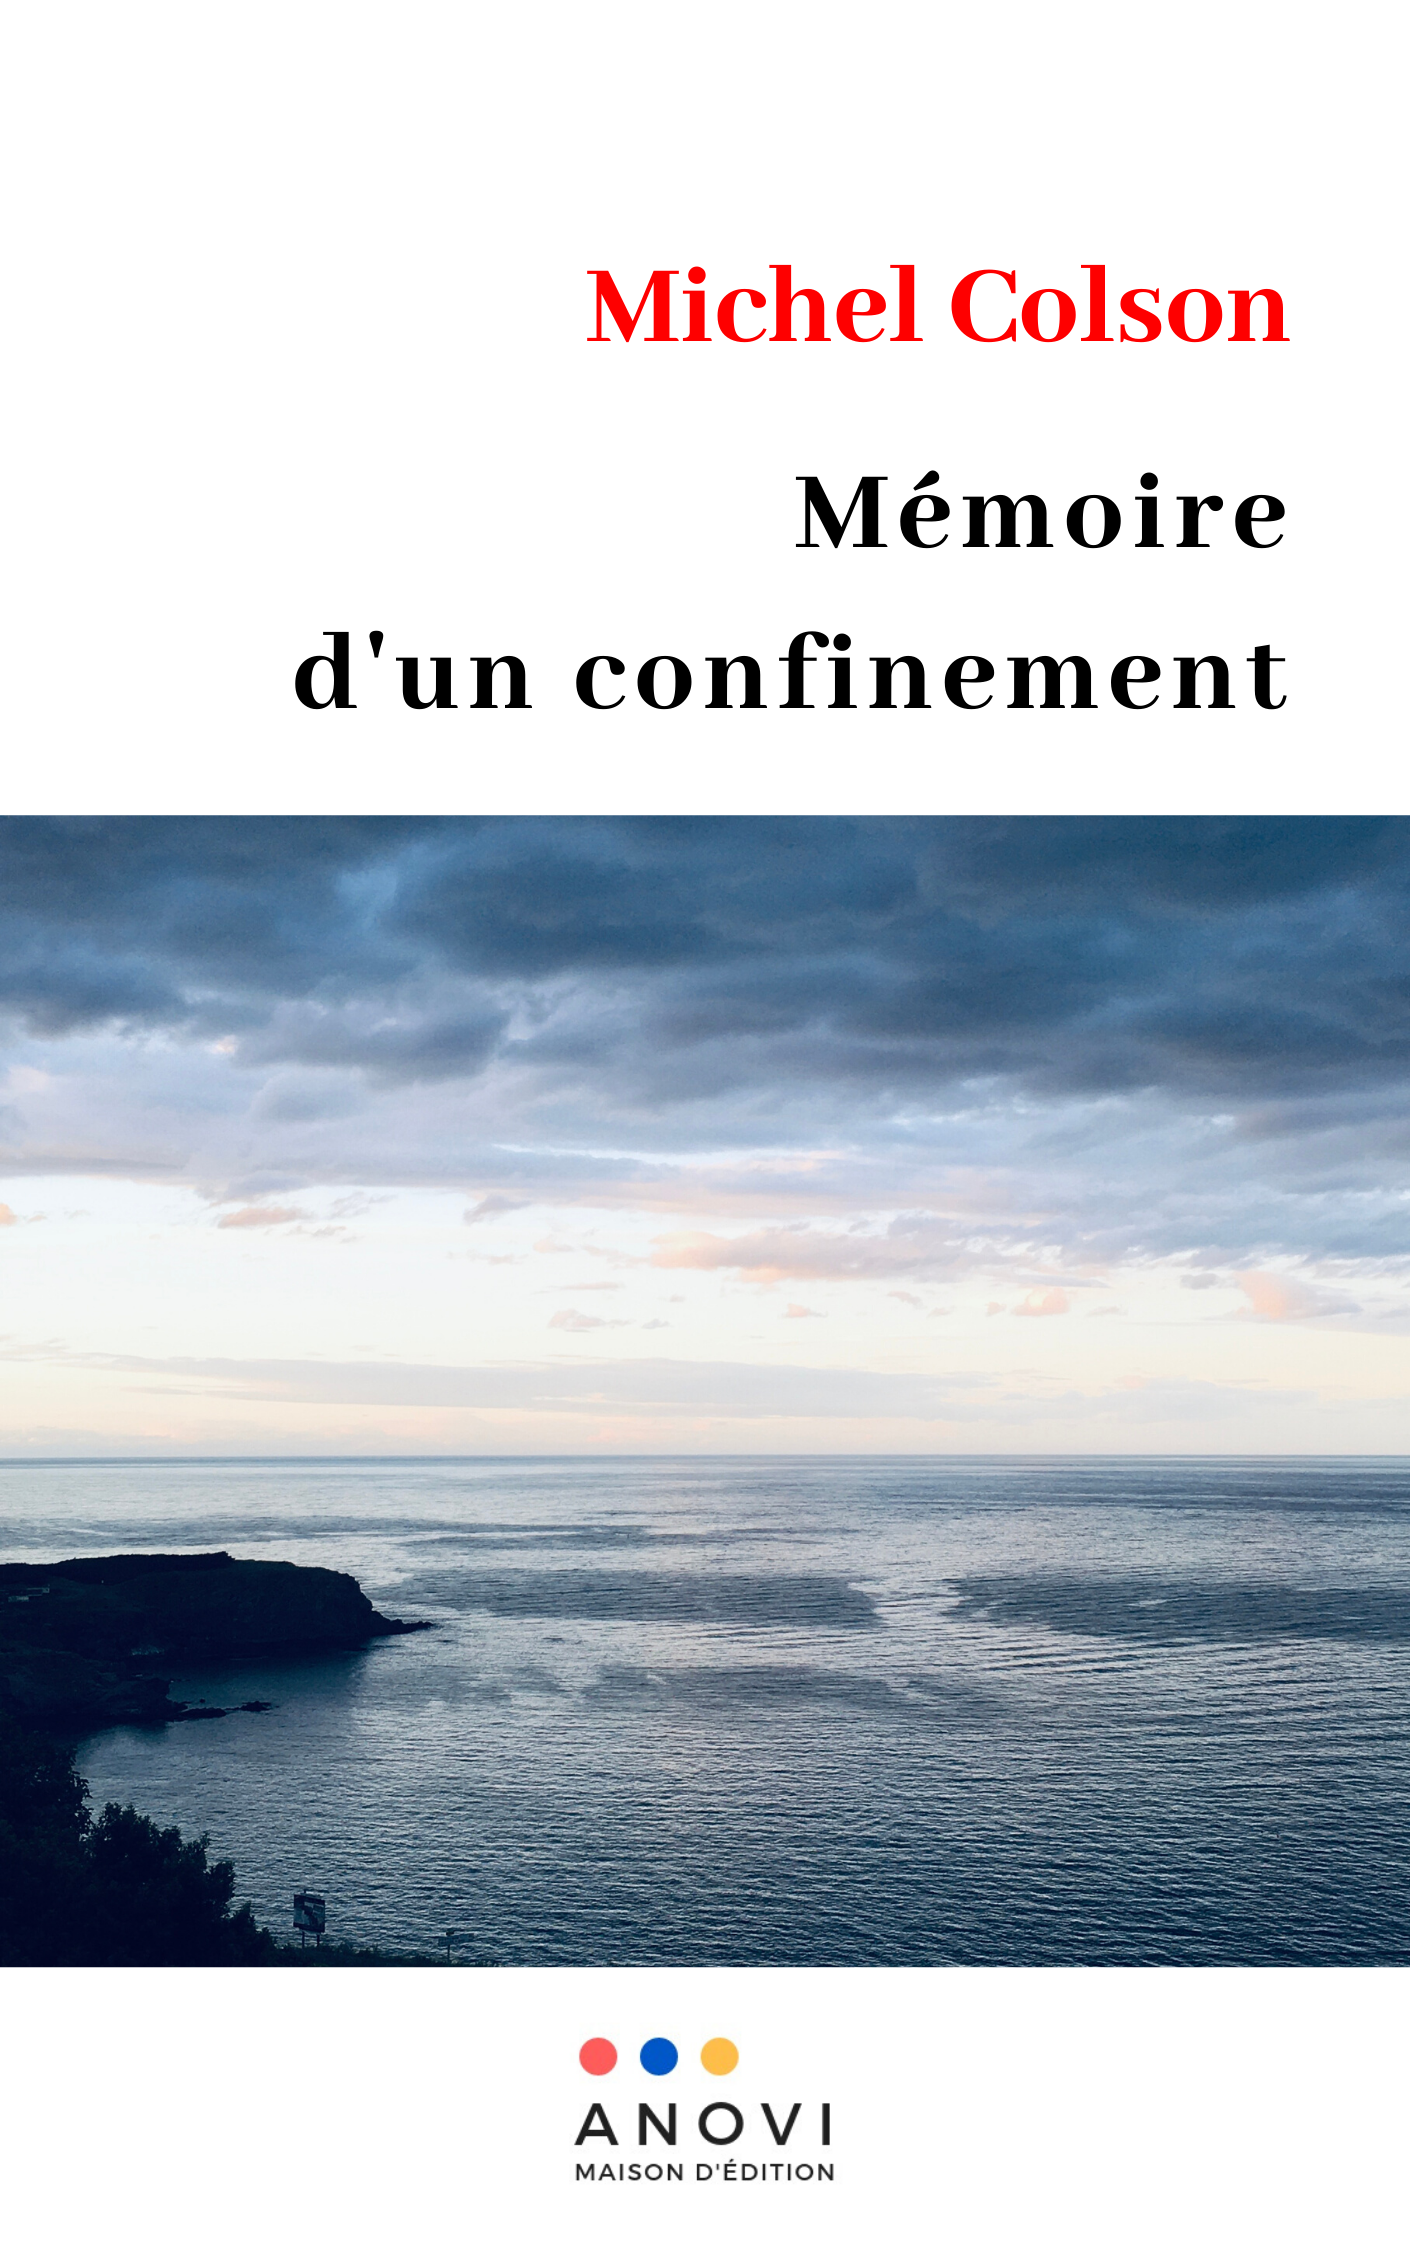 Mémoire d'un confinement Image